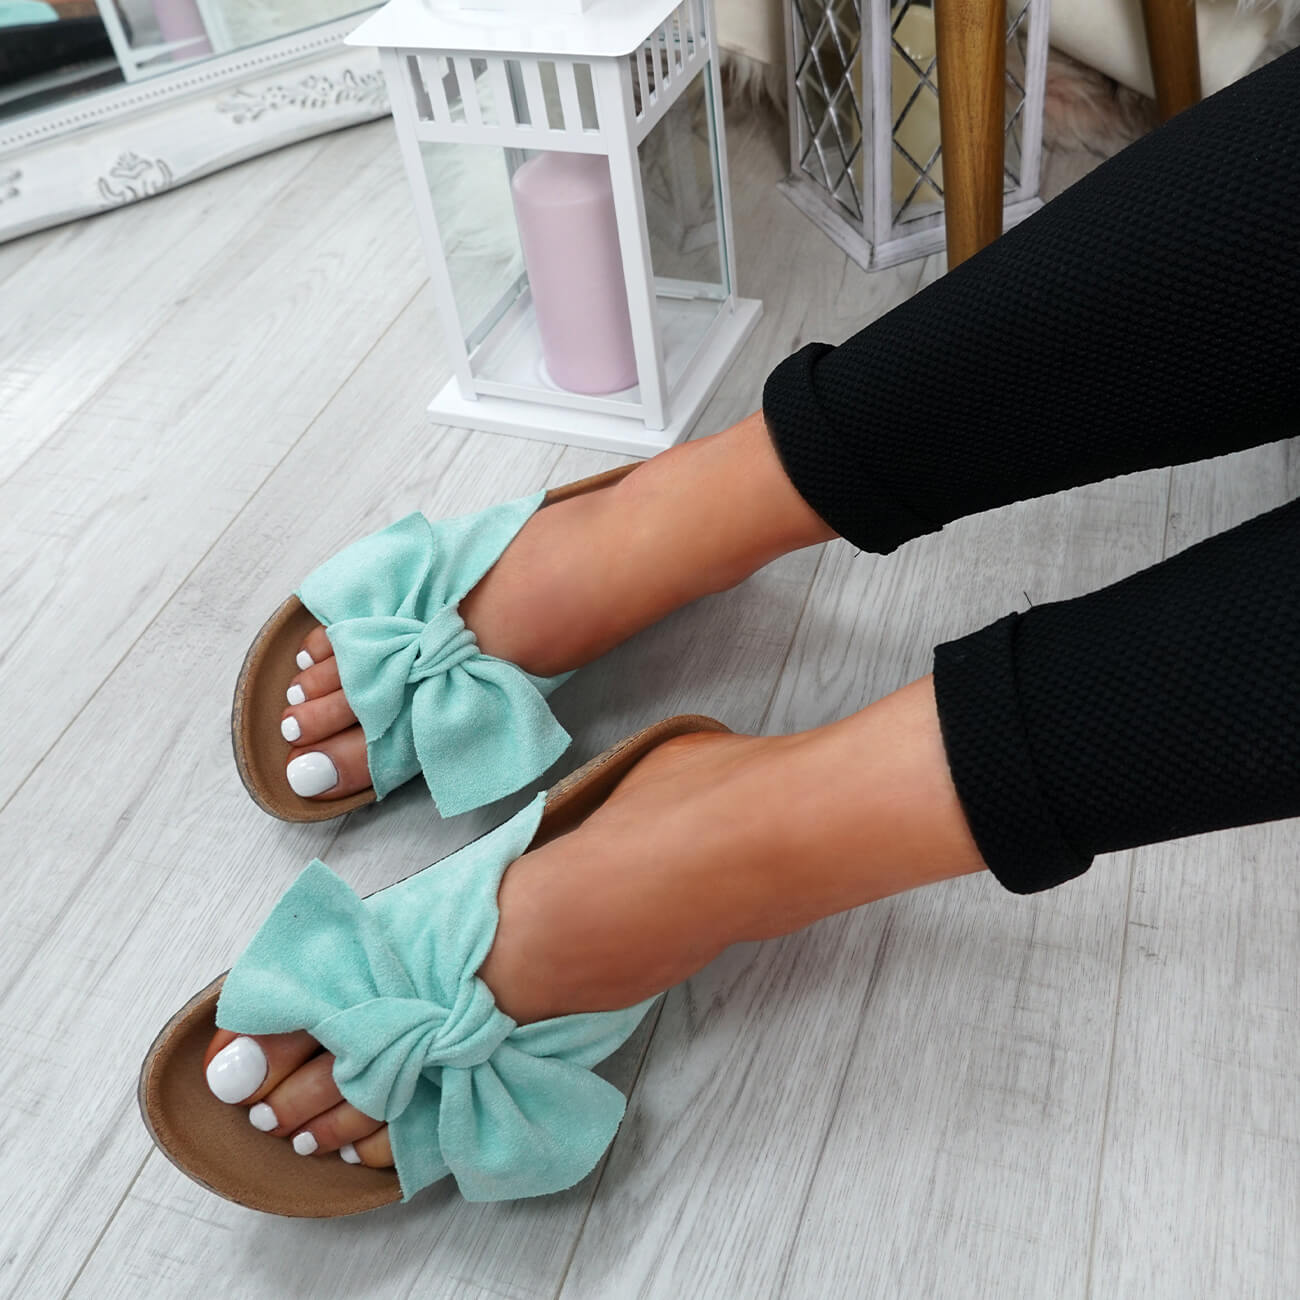 WOMENS-LADIES-SLIP-ON-FLAT-SANDALS-BOW-SLIDERS-SUMMER-CASUAL-SHOES-SIZE thumbnail 24